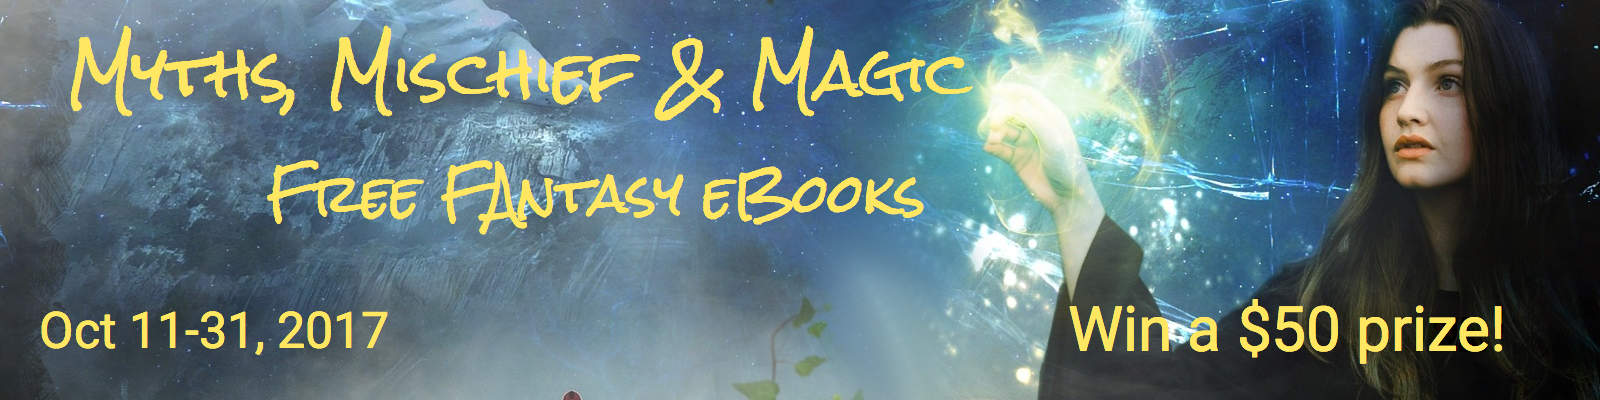 Myths, Mischief & Magic: Free Fantasy eBooks